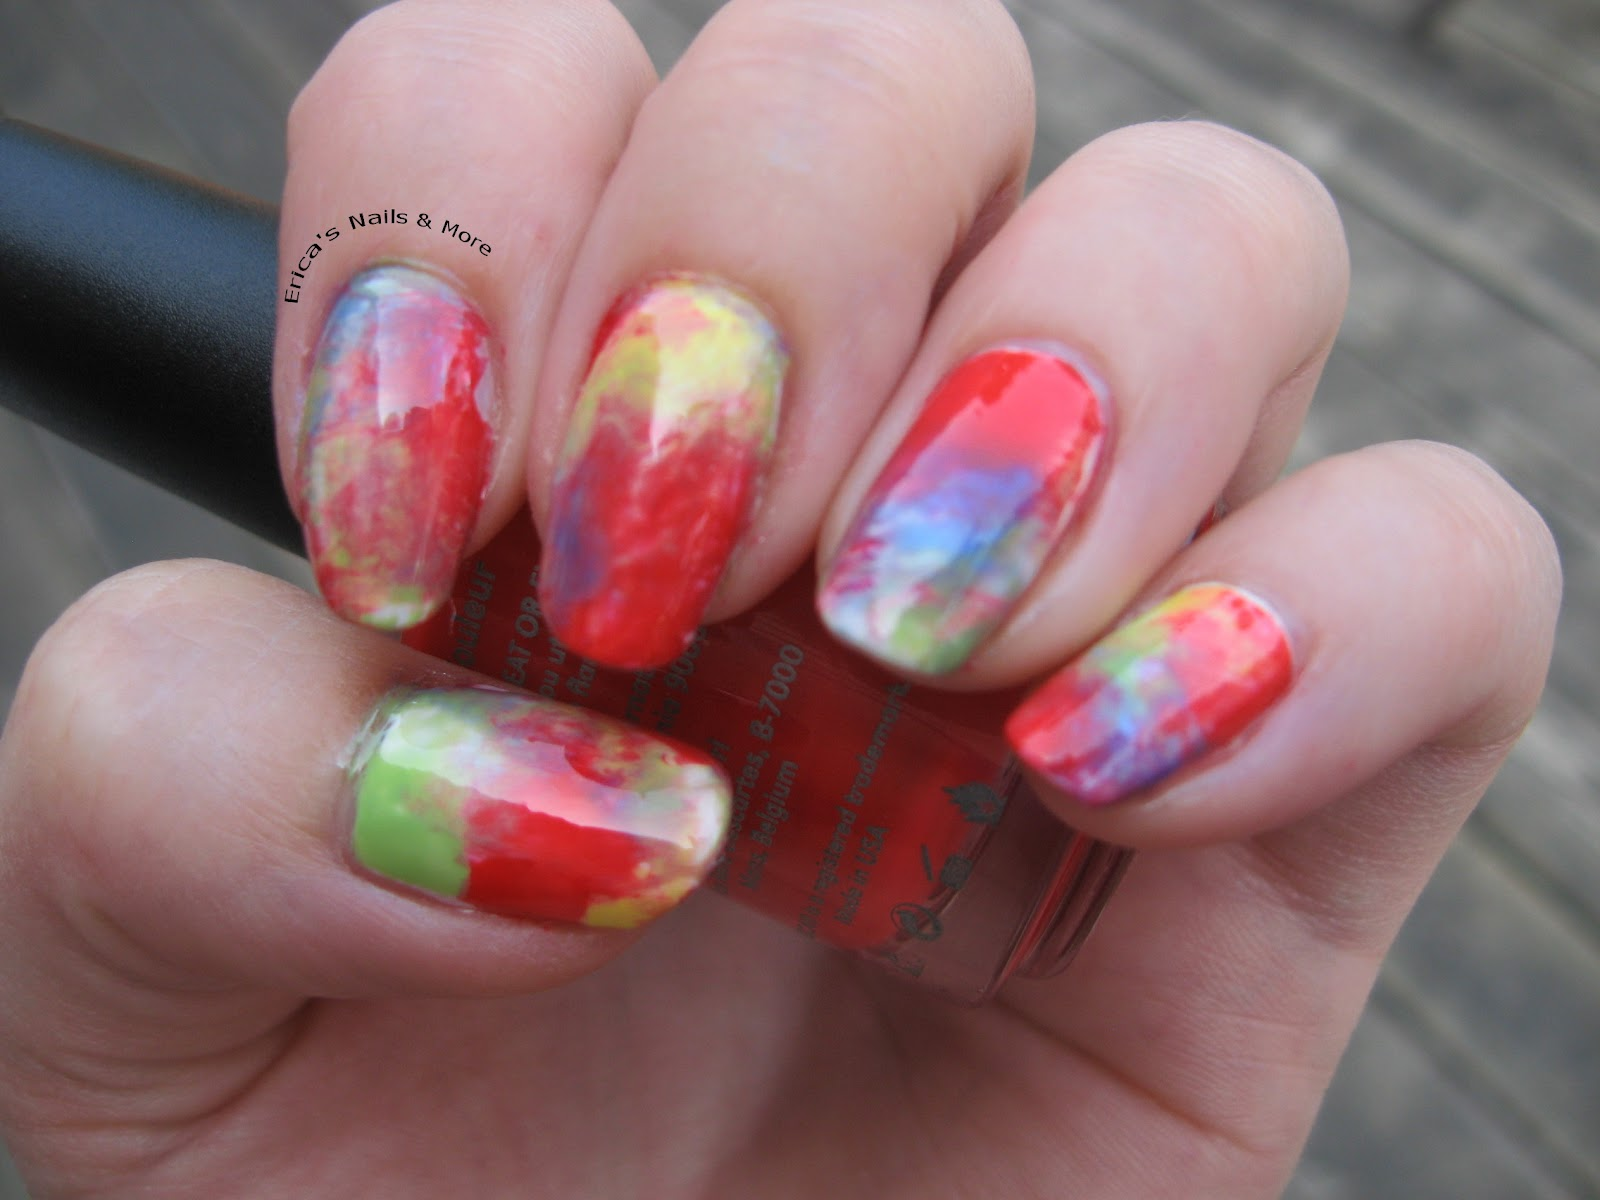 Notd Tie Dye Peace Nail Art Ericas Nails And More